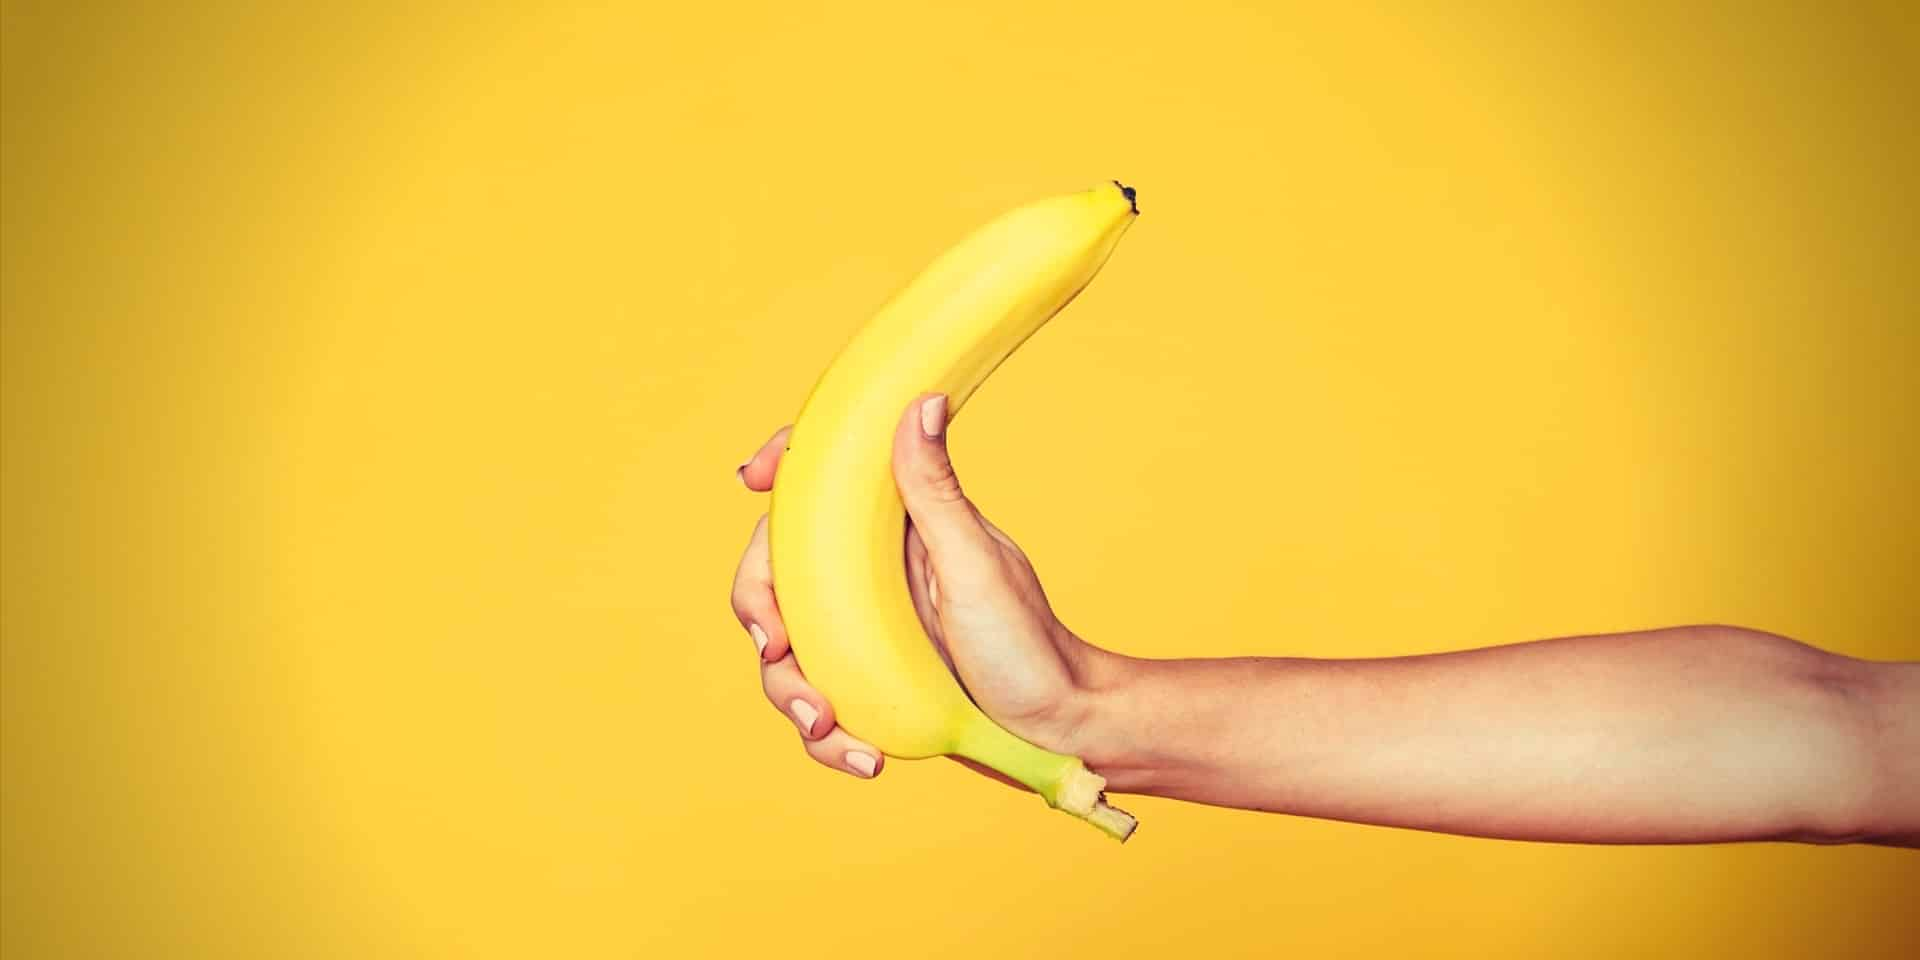 Instant Erection female hand holding banana